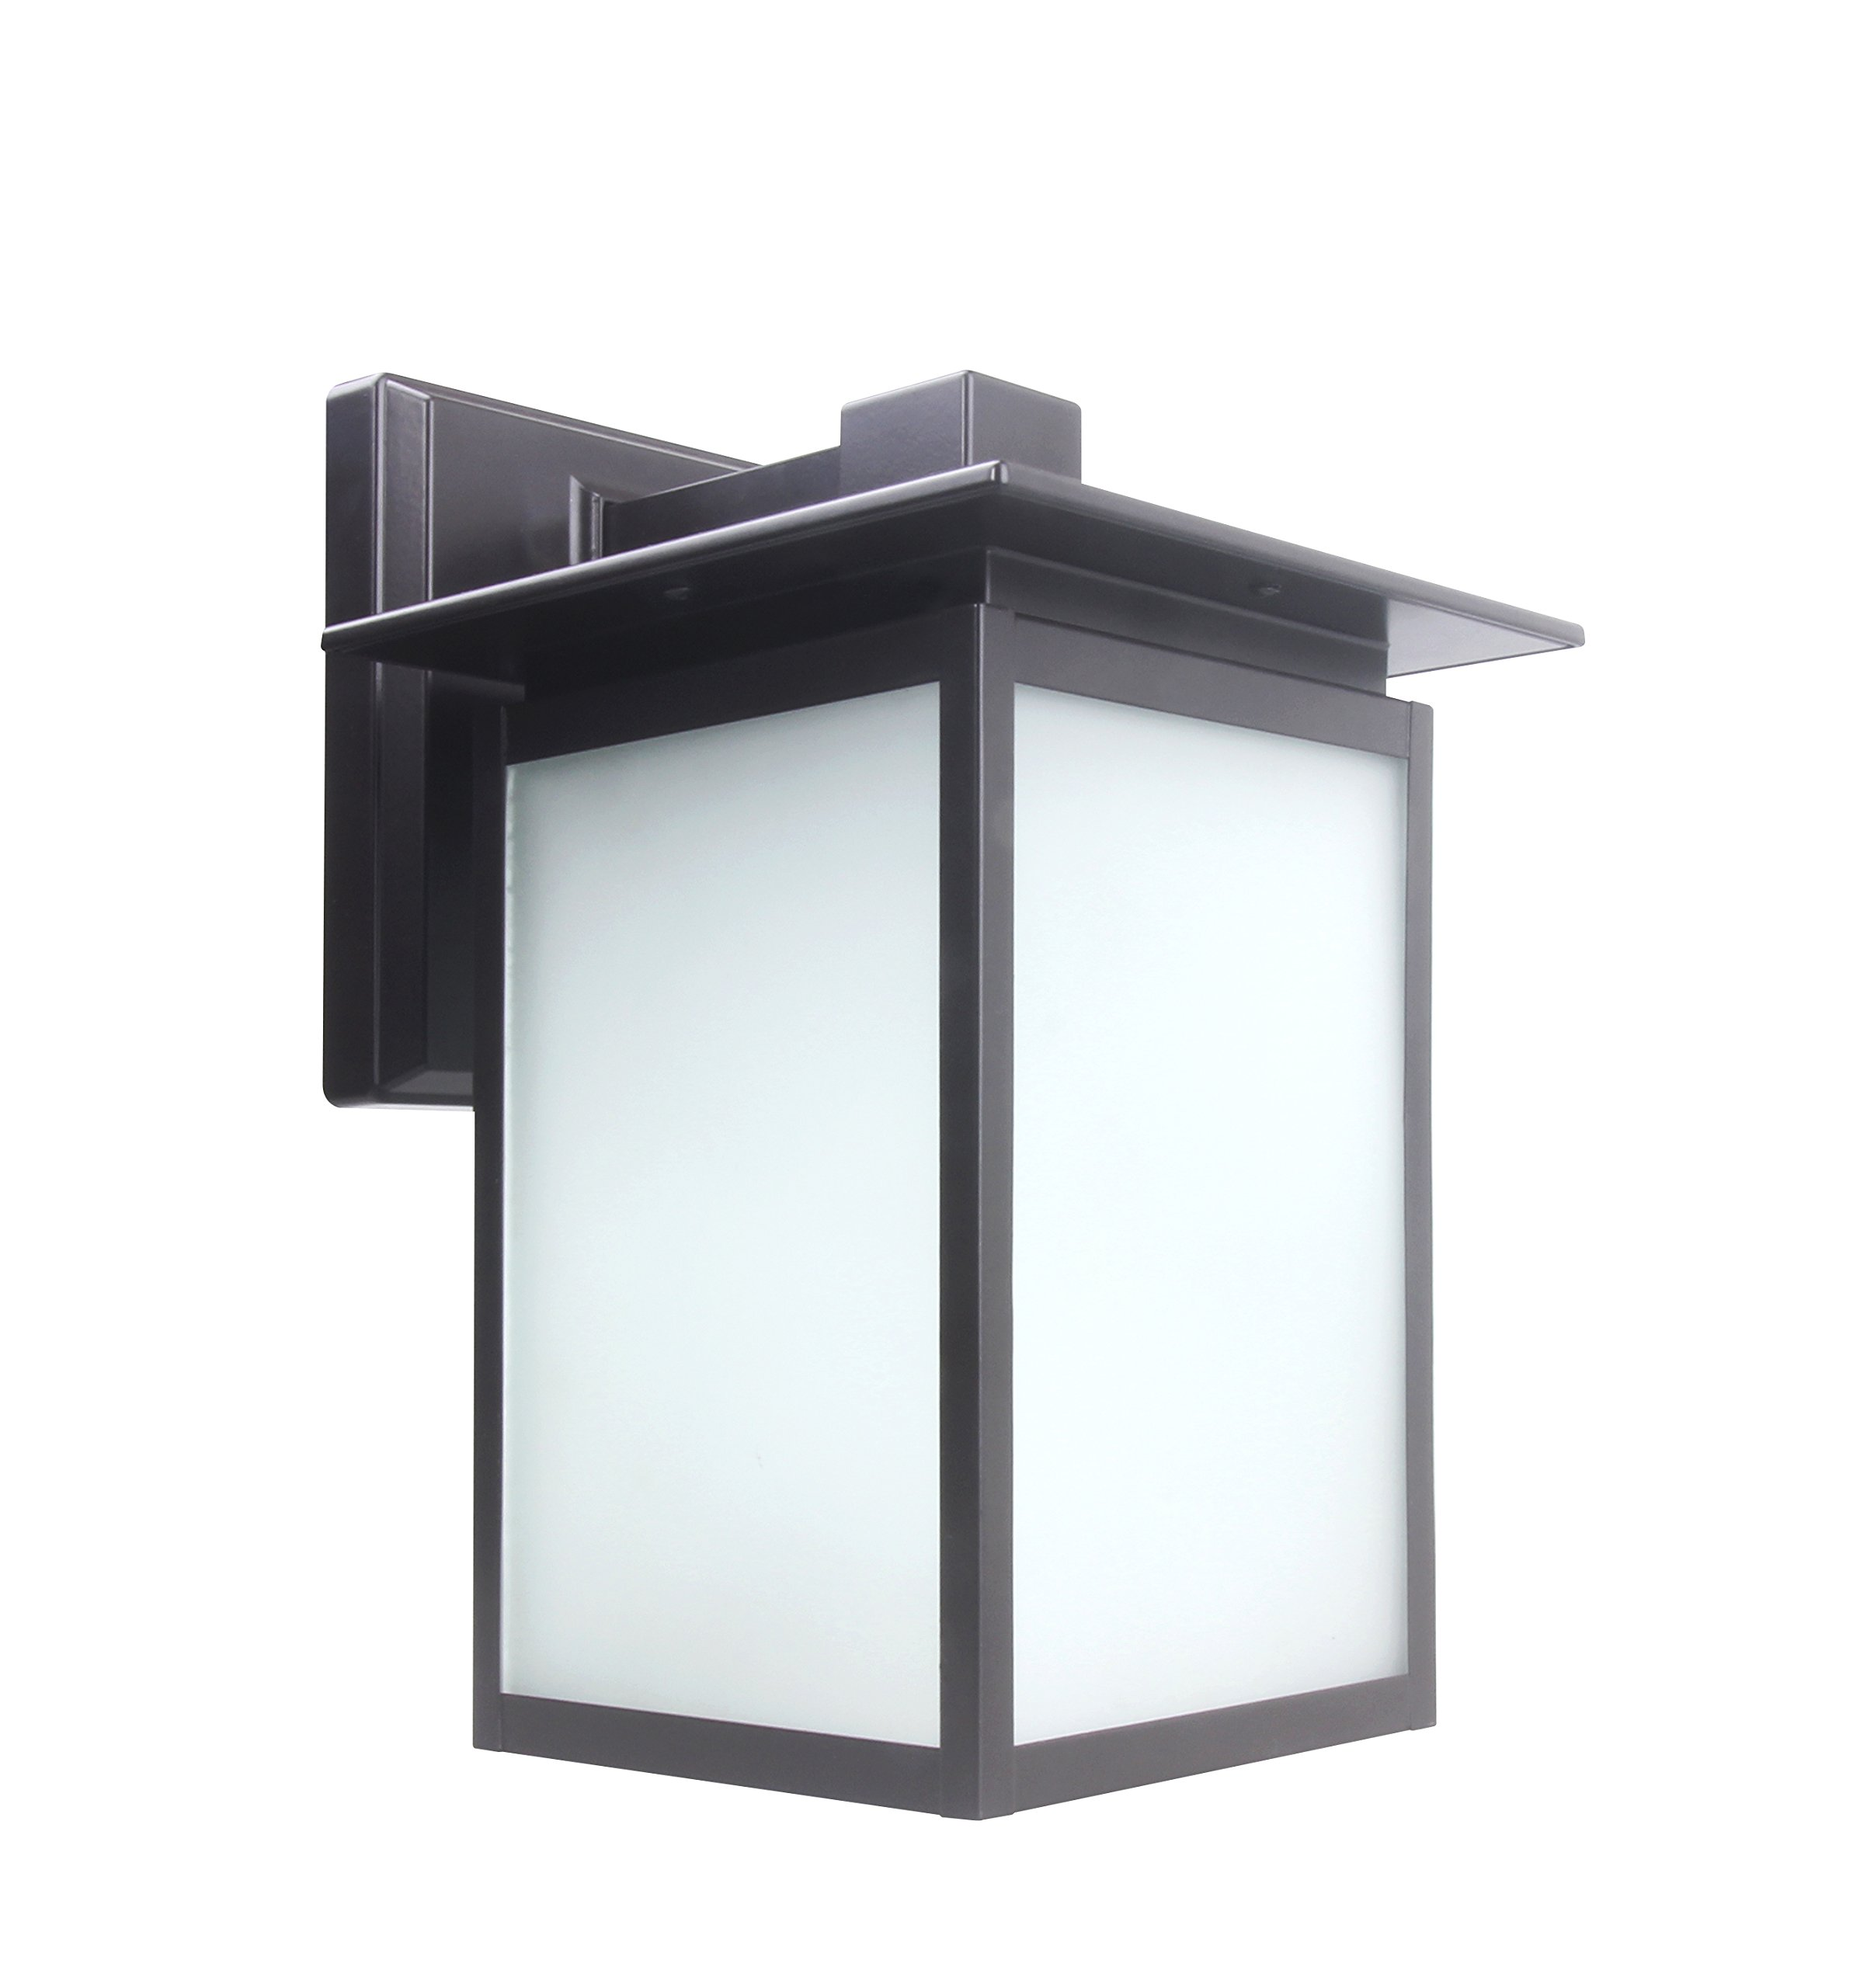 Lit-Path Outdoor LED Wall Lantern, Wall Sconce as Porch Light Fixture, 12.5W (125W Equivalent), 1250 Lumen, Aluminum Housing Plus Glass, Oil Rubbed Bronze, ETL and ES Qualified